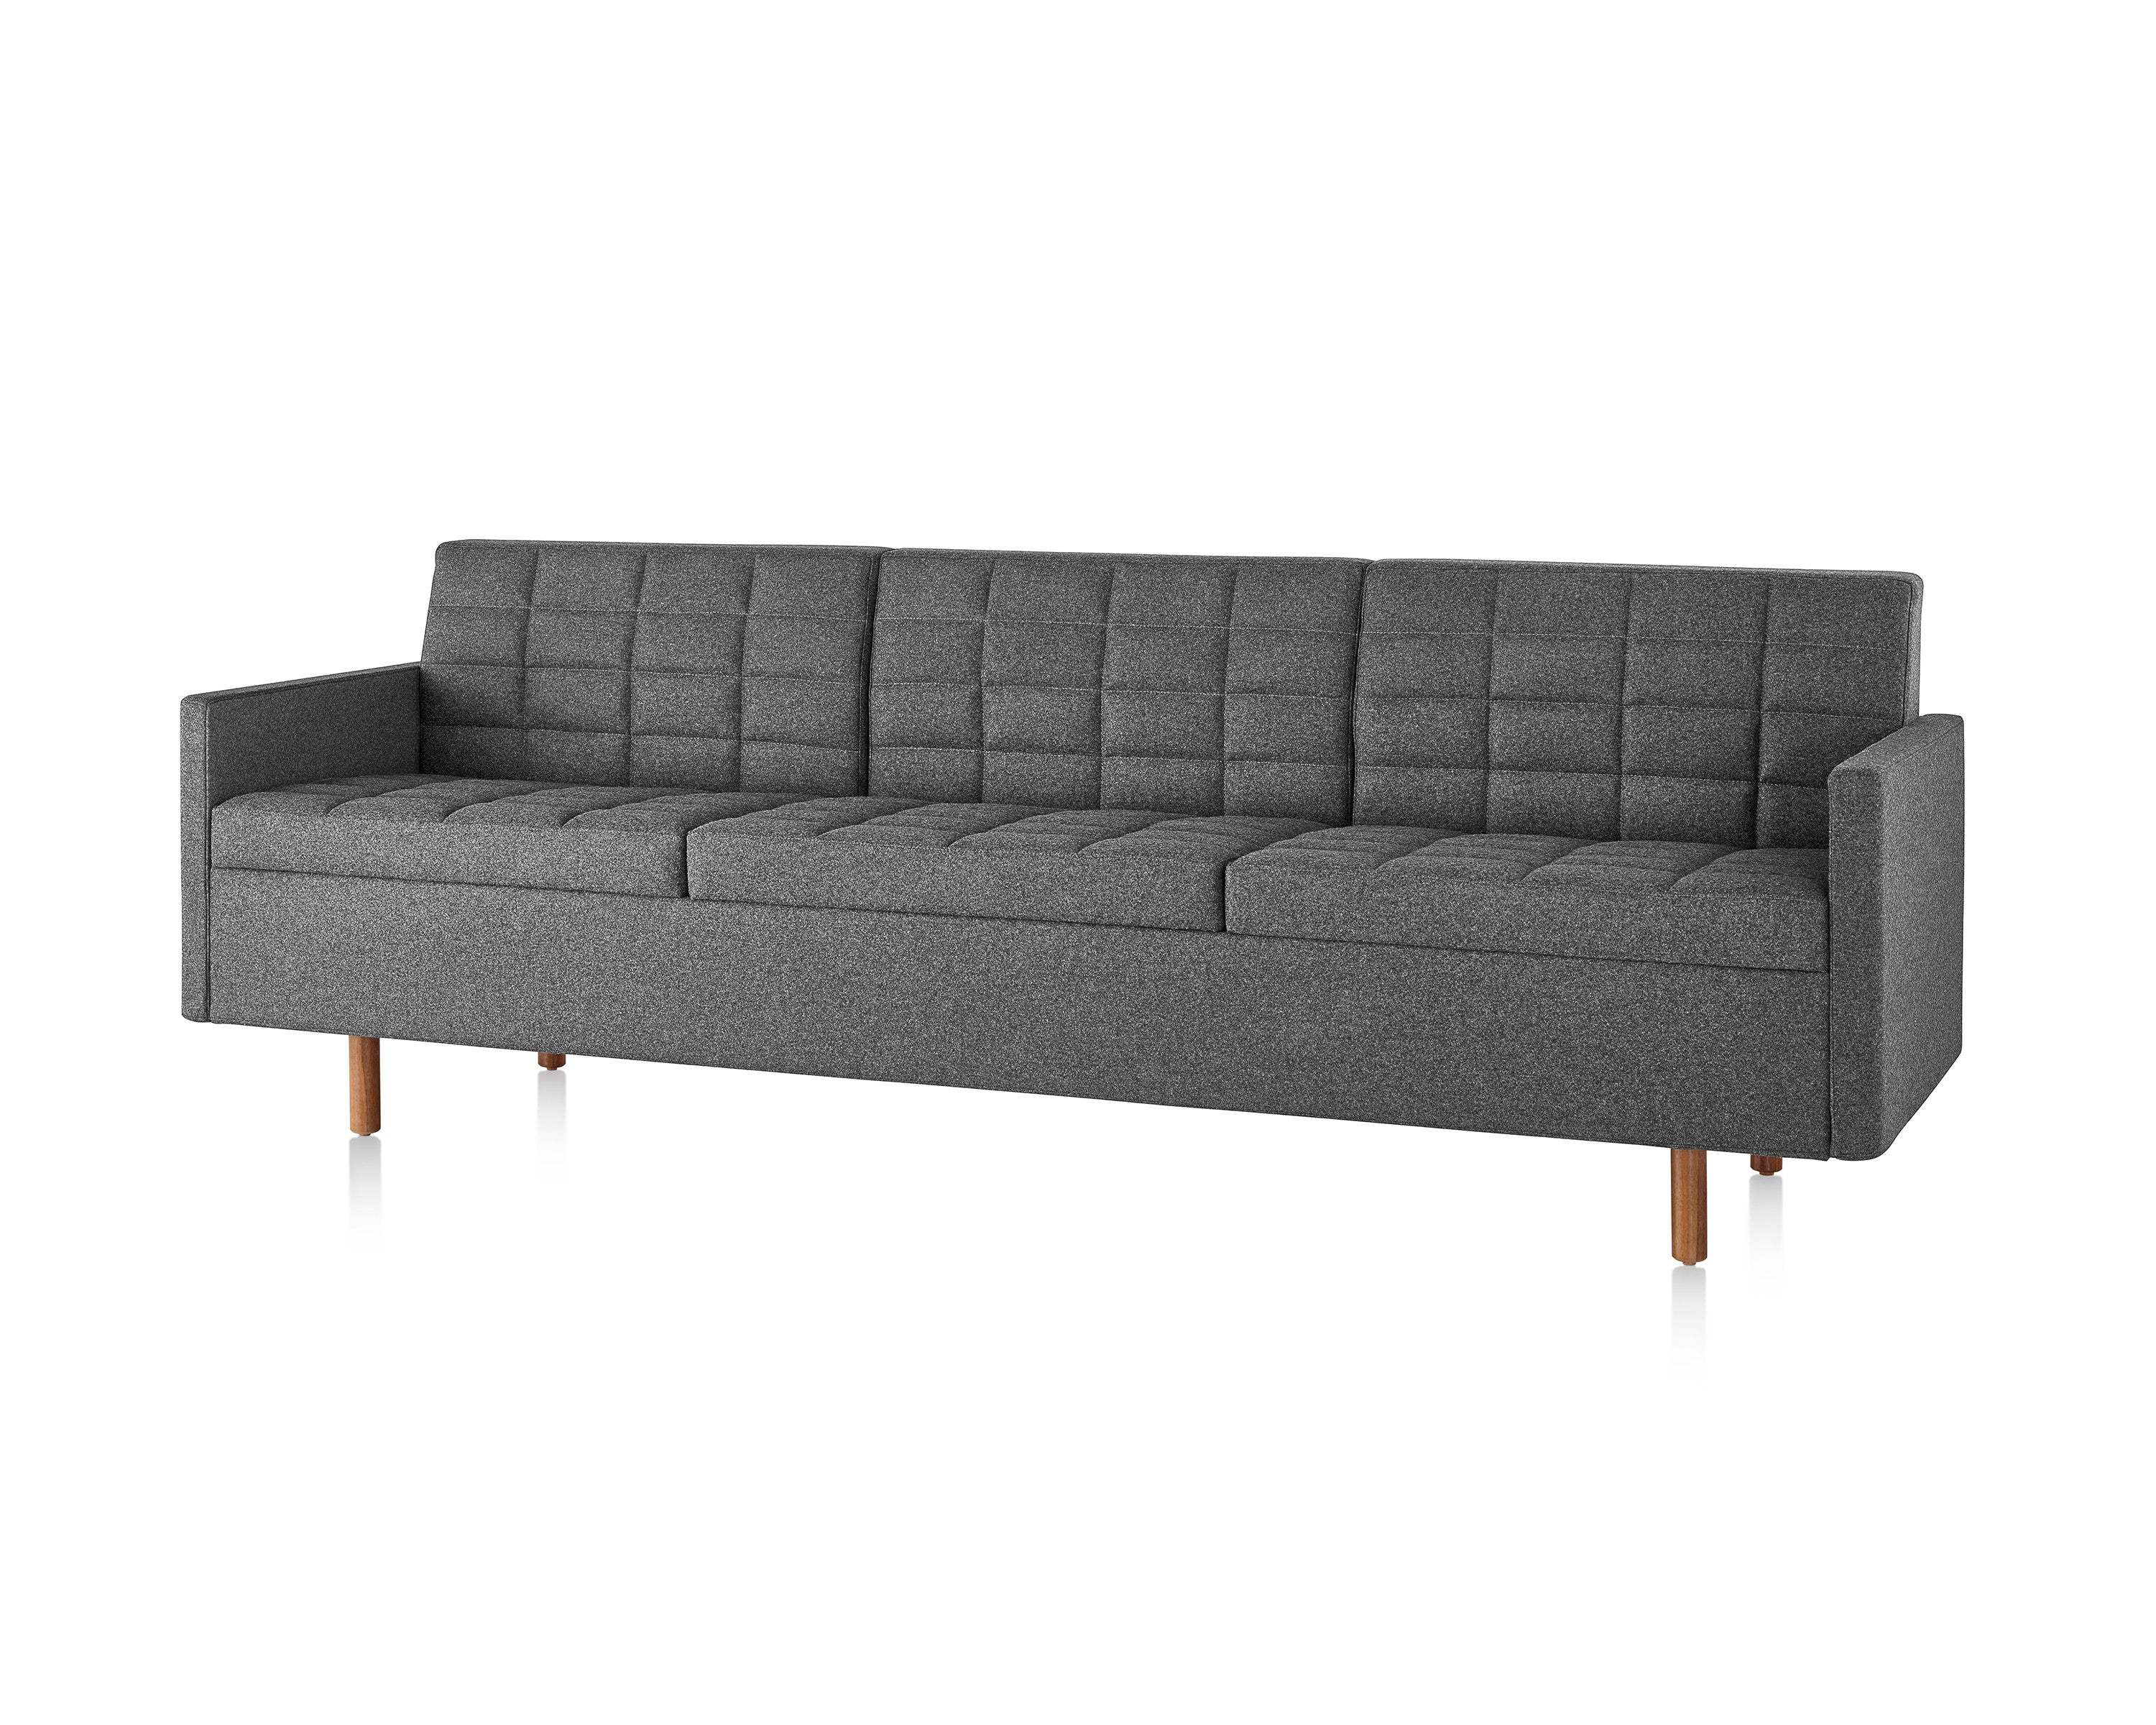 TUXEDO CLASSIC SOFA Sofas And Sectionals By Herman Miller